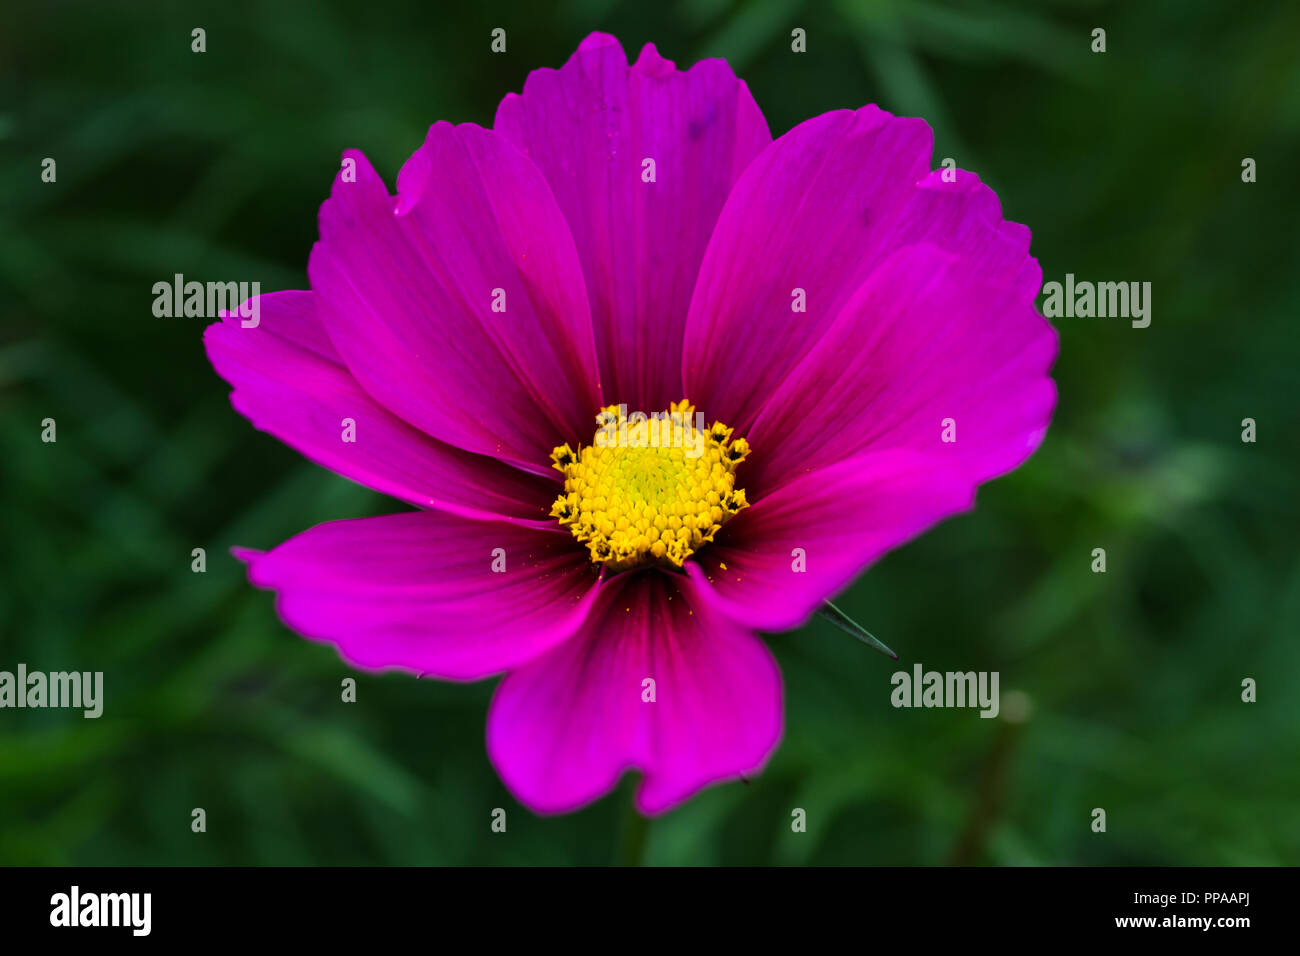 Purple Flower With White Centre Stock Photos Purple Flower With